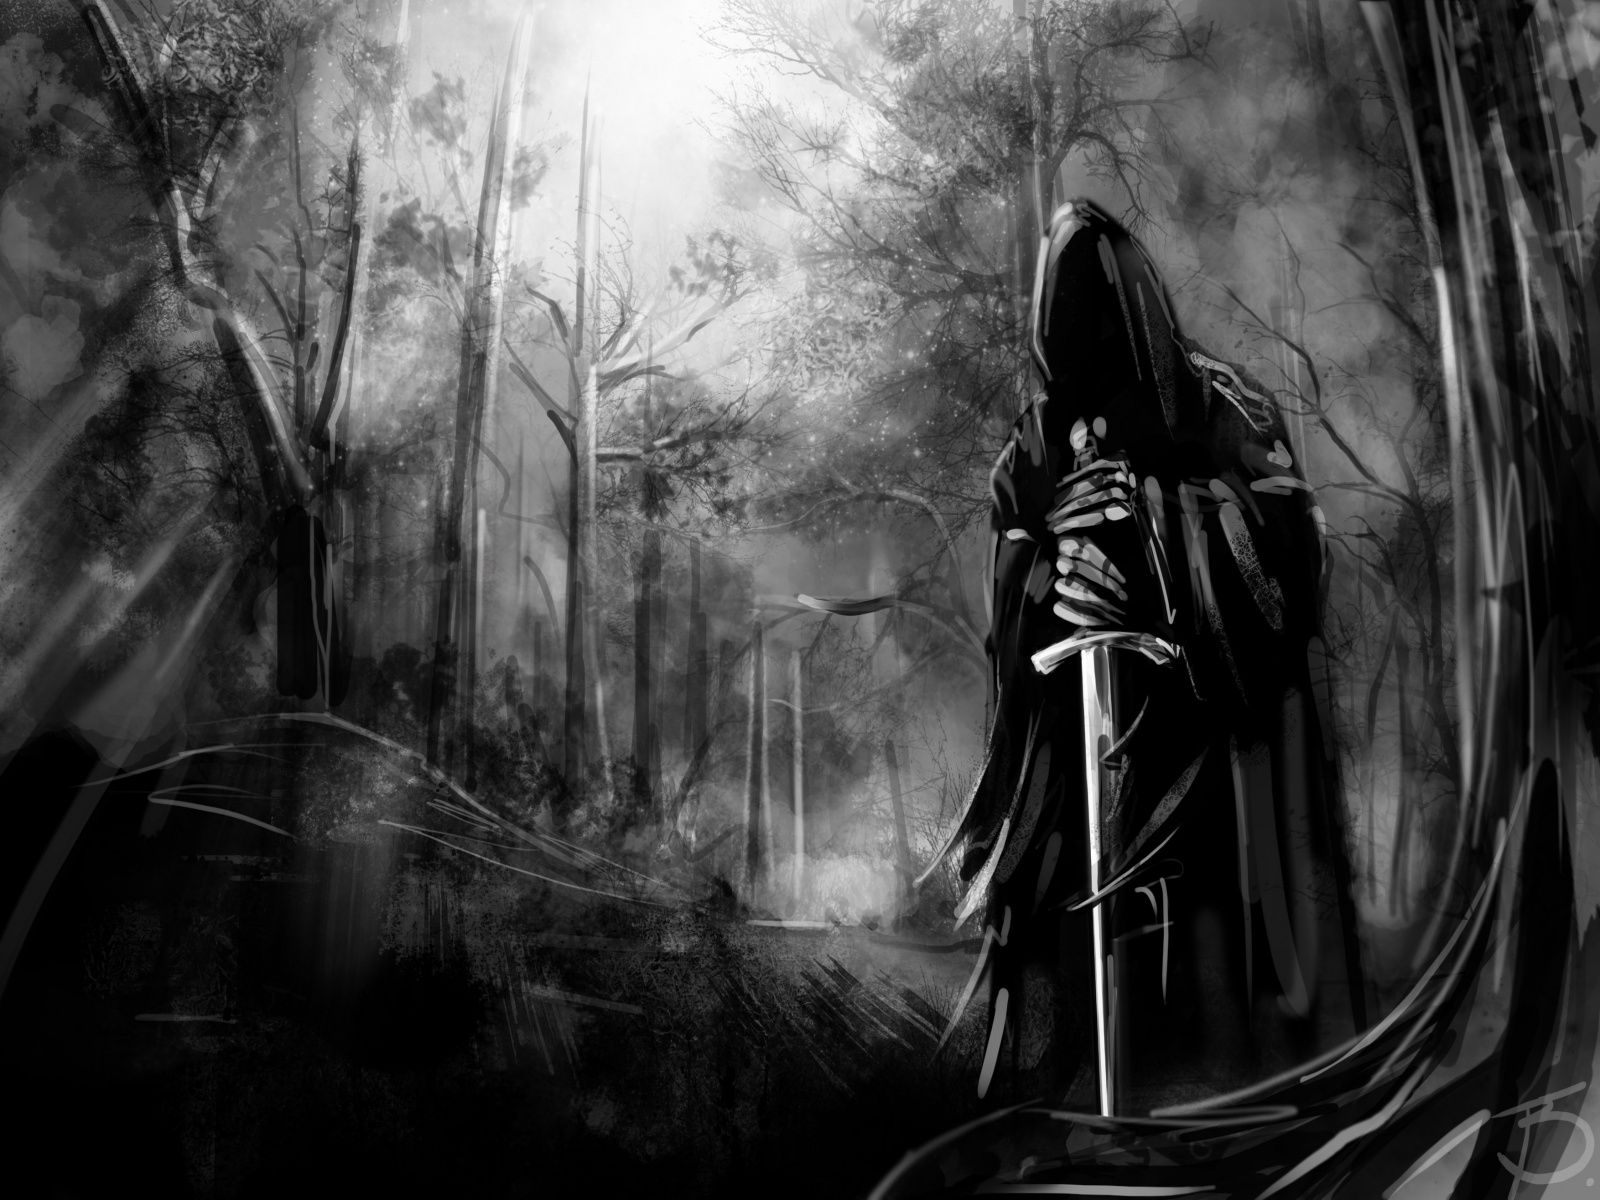 Lord of the Rings Nazgul